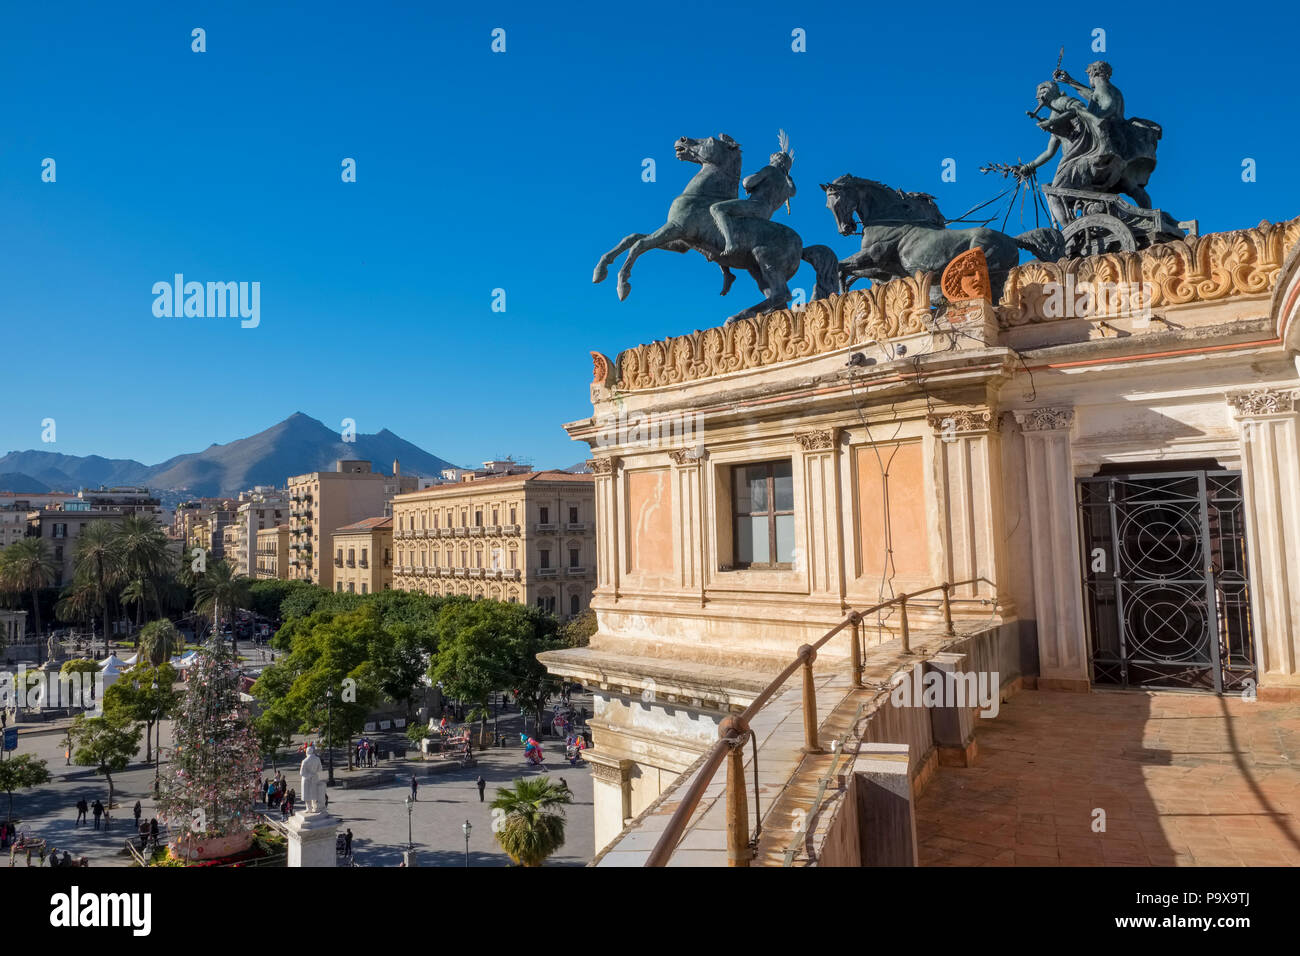 The view from the Politeama Theatre, Palermo, Sicily, showing central Piazza Politeama and the bronze Quadriga on the Teatro Politeama Stock Photo